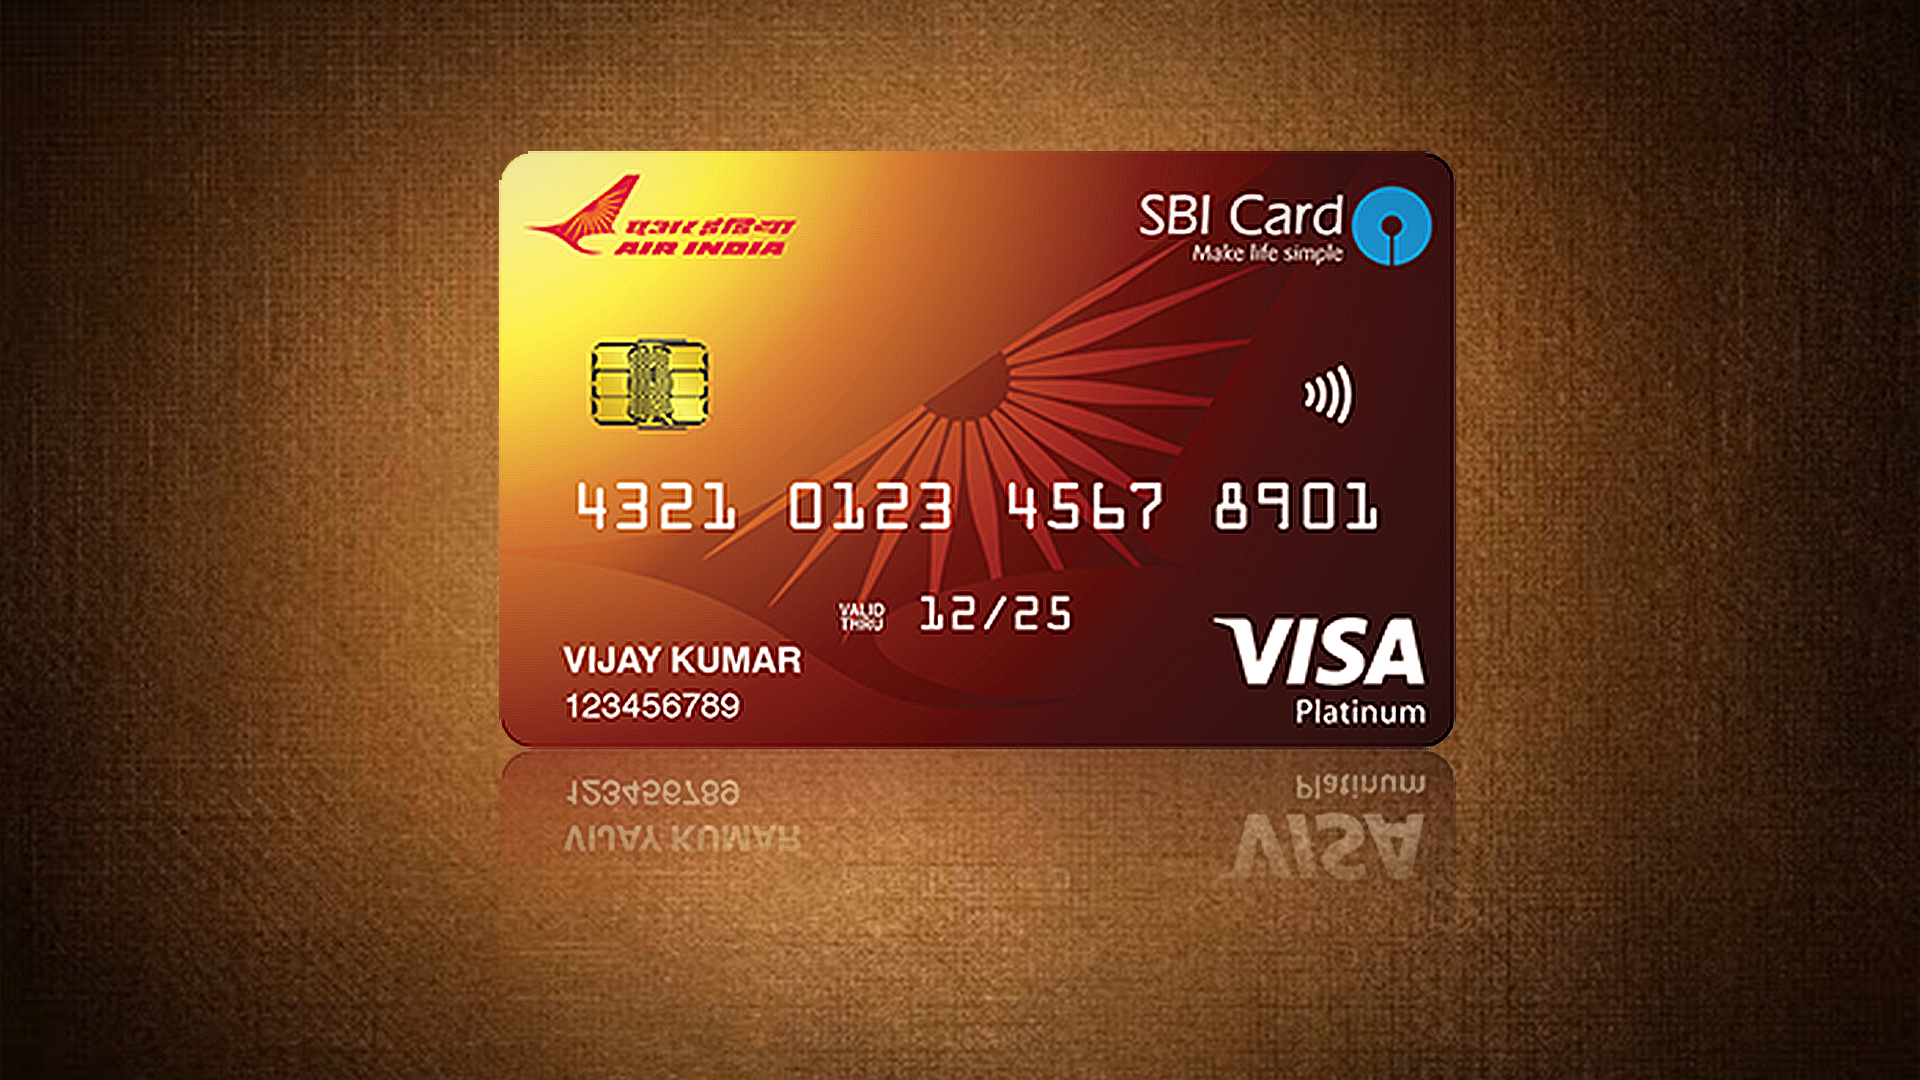 Air India SBI Platinum Card